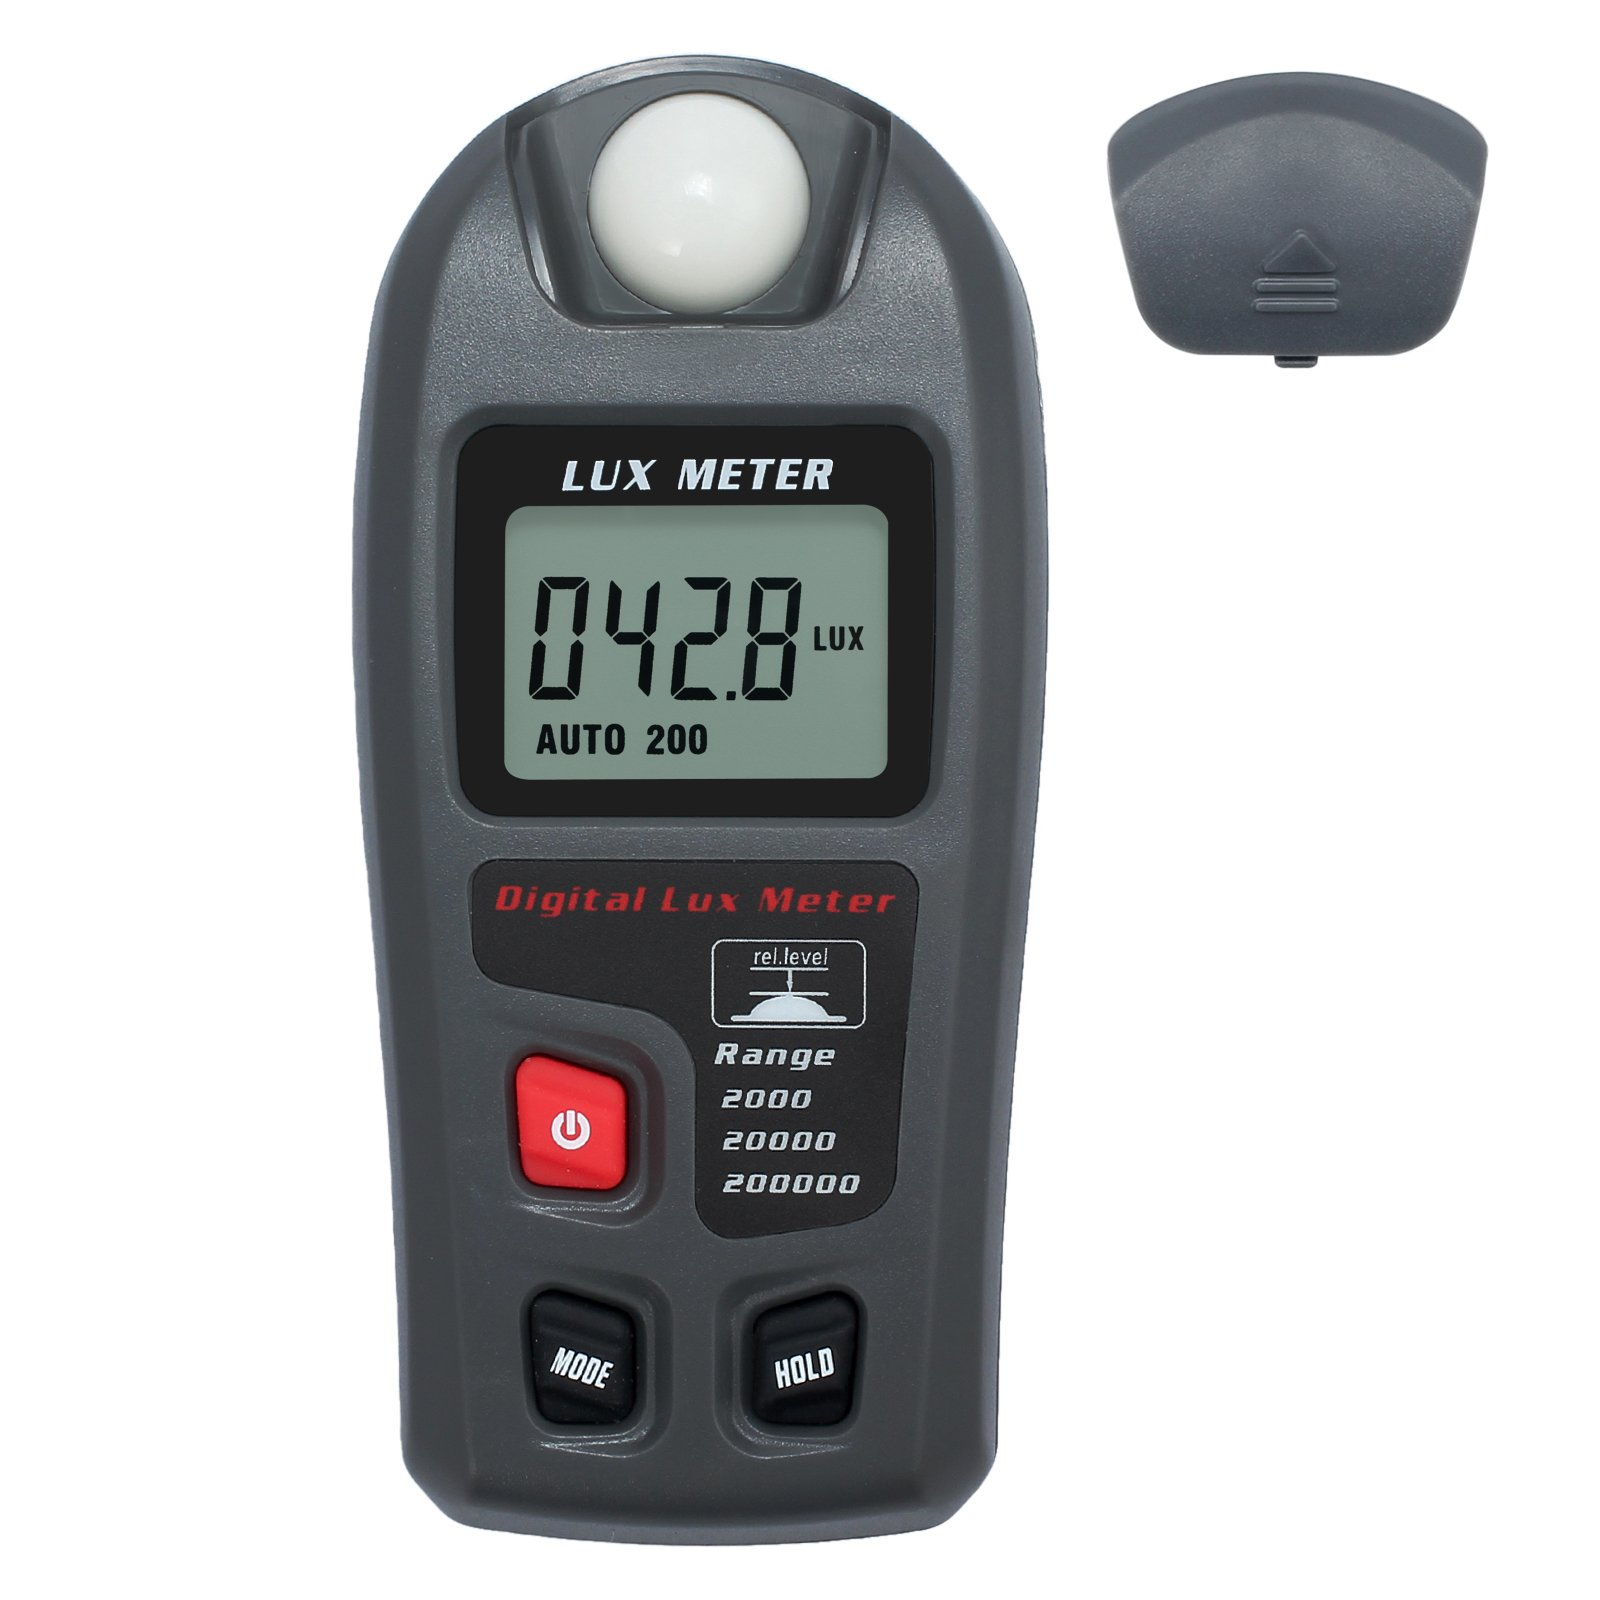 Proster Digital Luxmeters Illuminance Light Meter Luminometers Lux Light Meter Photometers High Accuracy ±4% Lux Meter with LCD Display Range 0.1-200000 Lux/0.01-20000 Fc by Proster